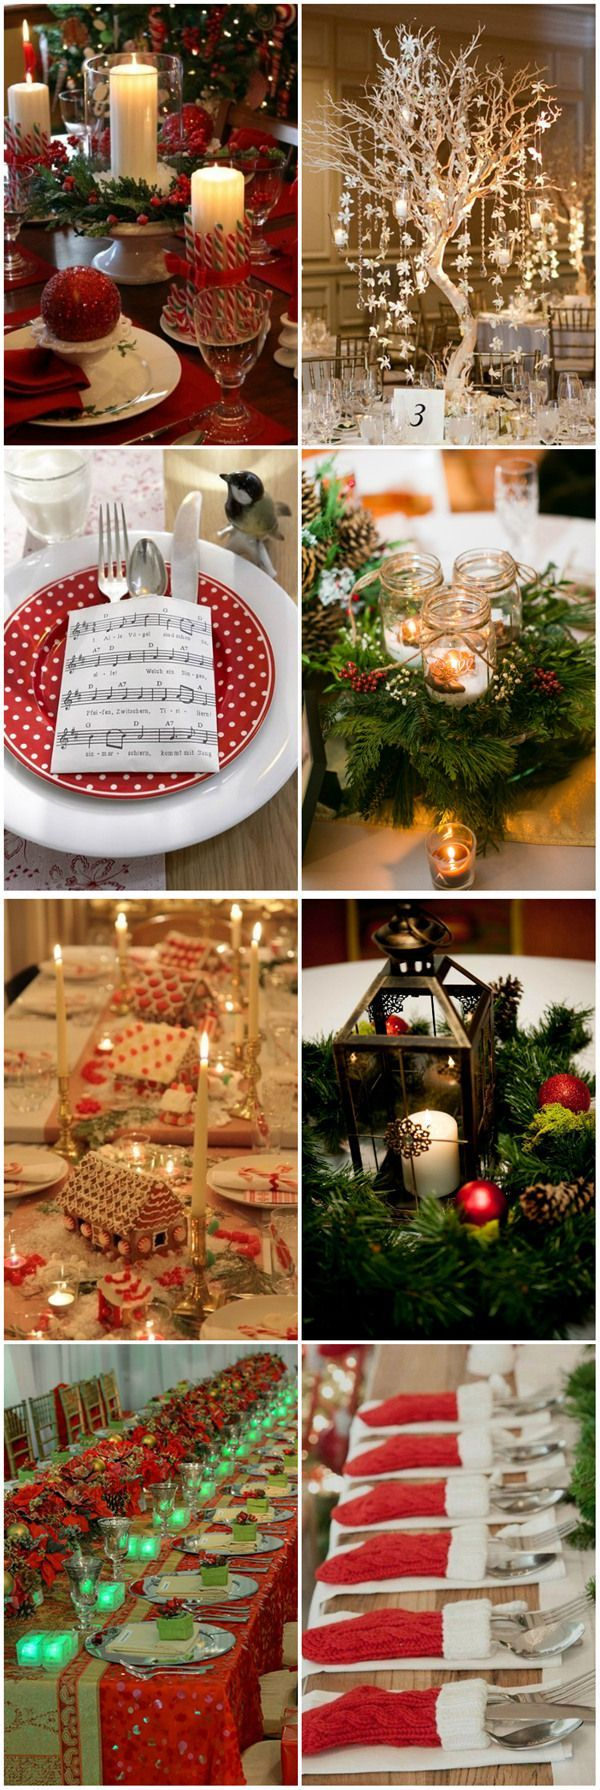 Best 25+ Christmas Party Centerpieces Ideas On Pinterest | Christmas Party  Table, Xmas Decorations And Christmas Decor Part 63